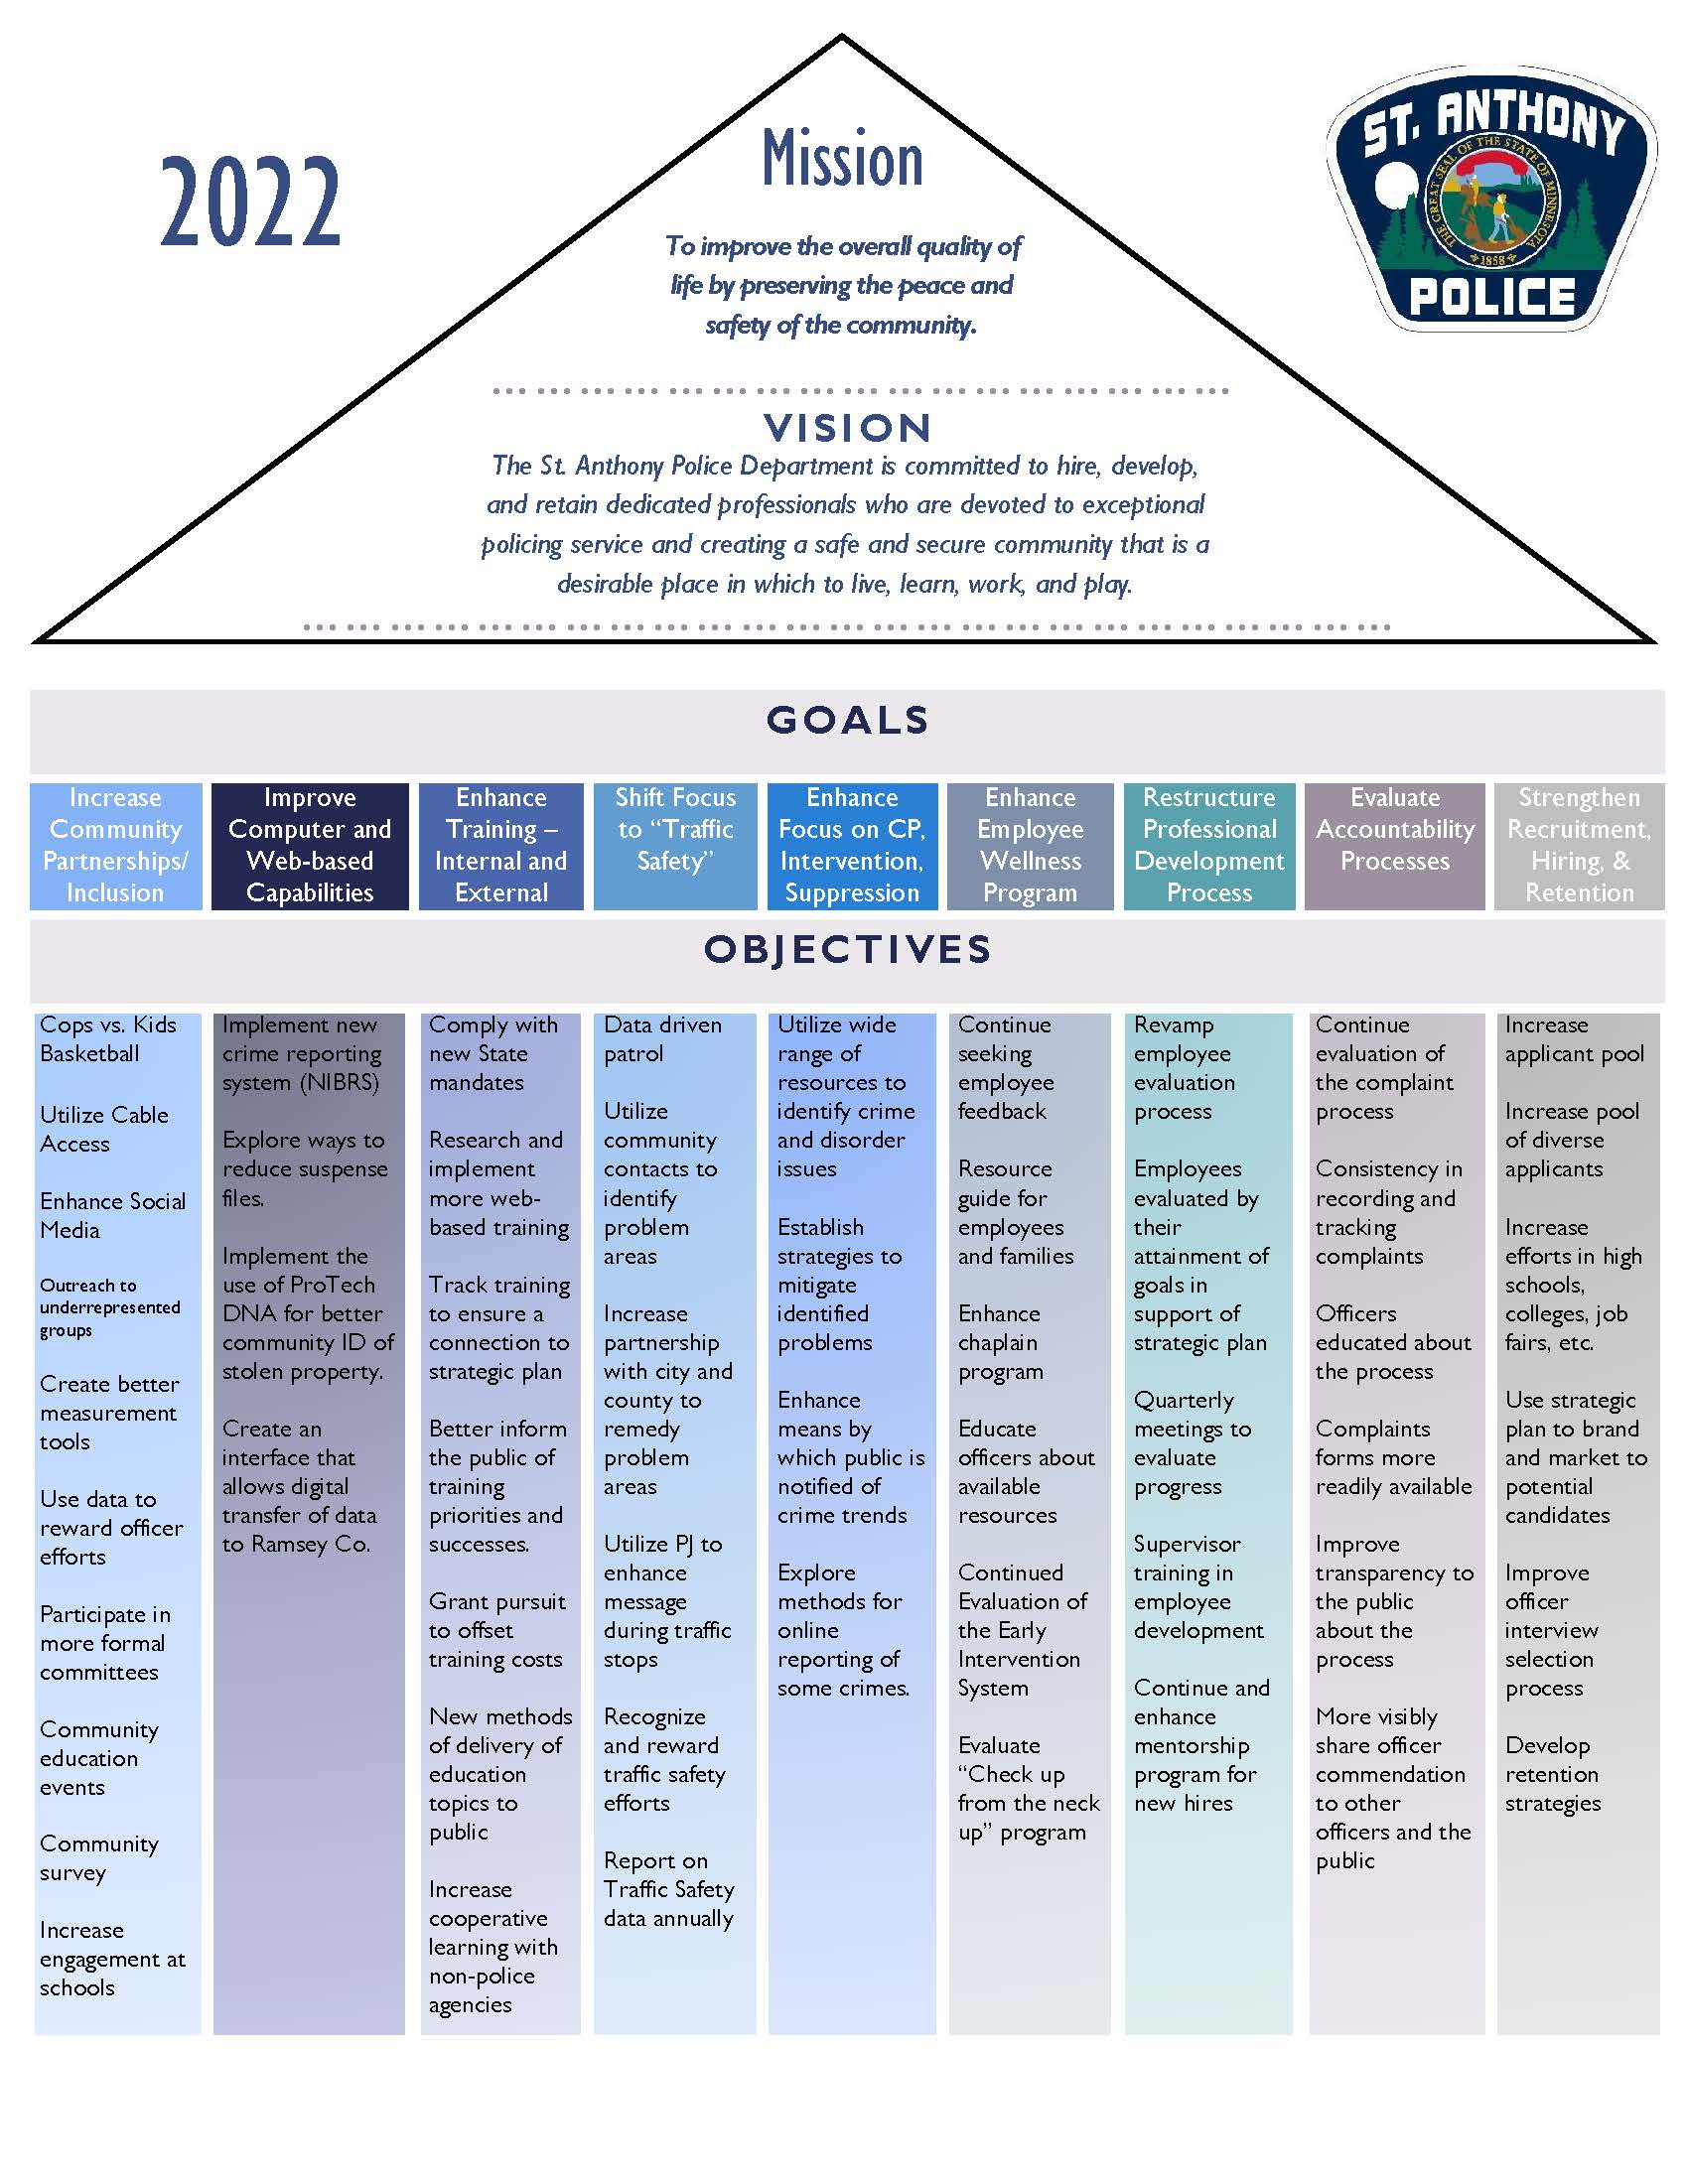 St. Anthony Police Department Vision and Goals Pyramid